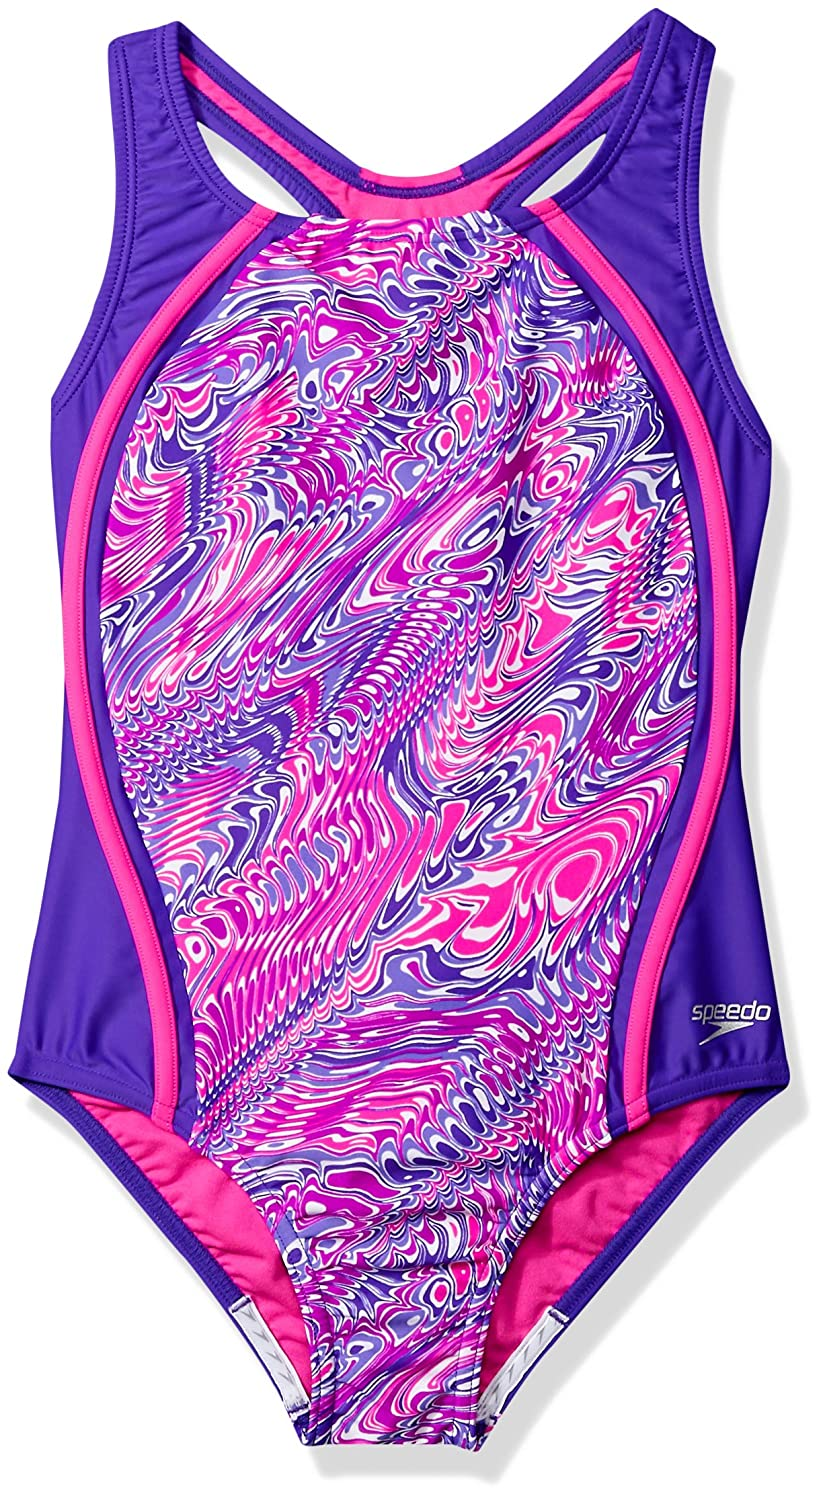 Speedo Printed Sport Splice One Piece Swimsuit Speedo Swimwear 7714721-P